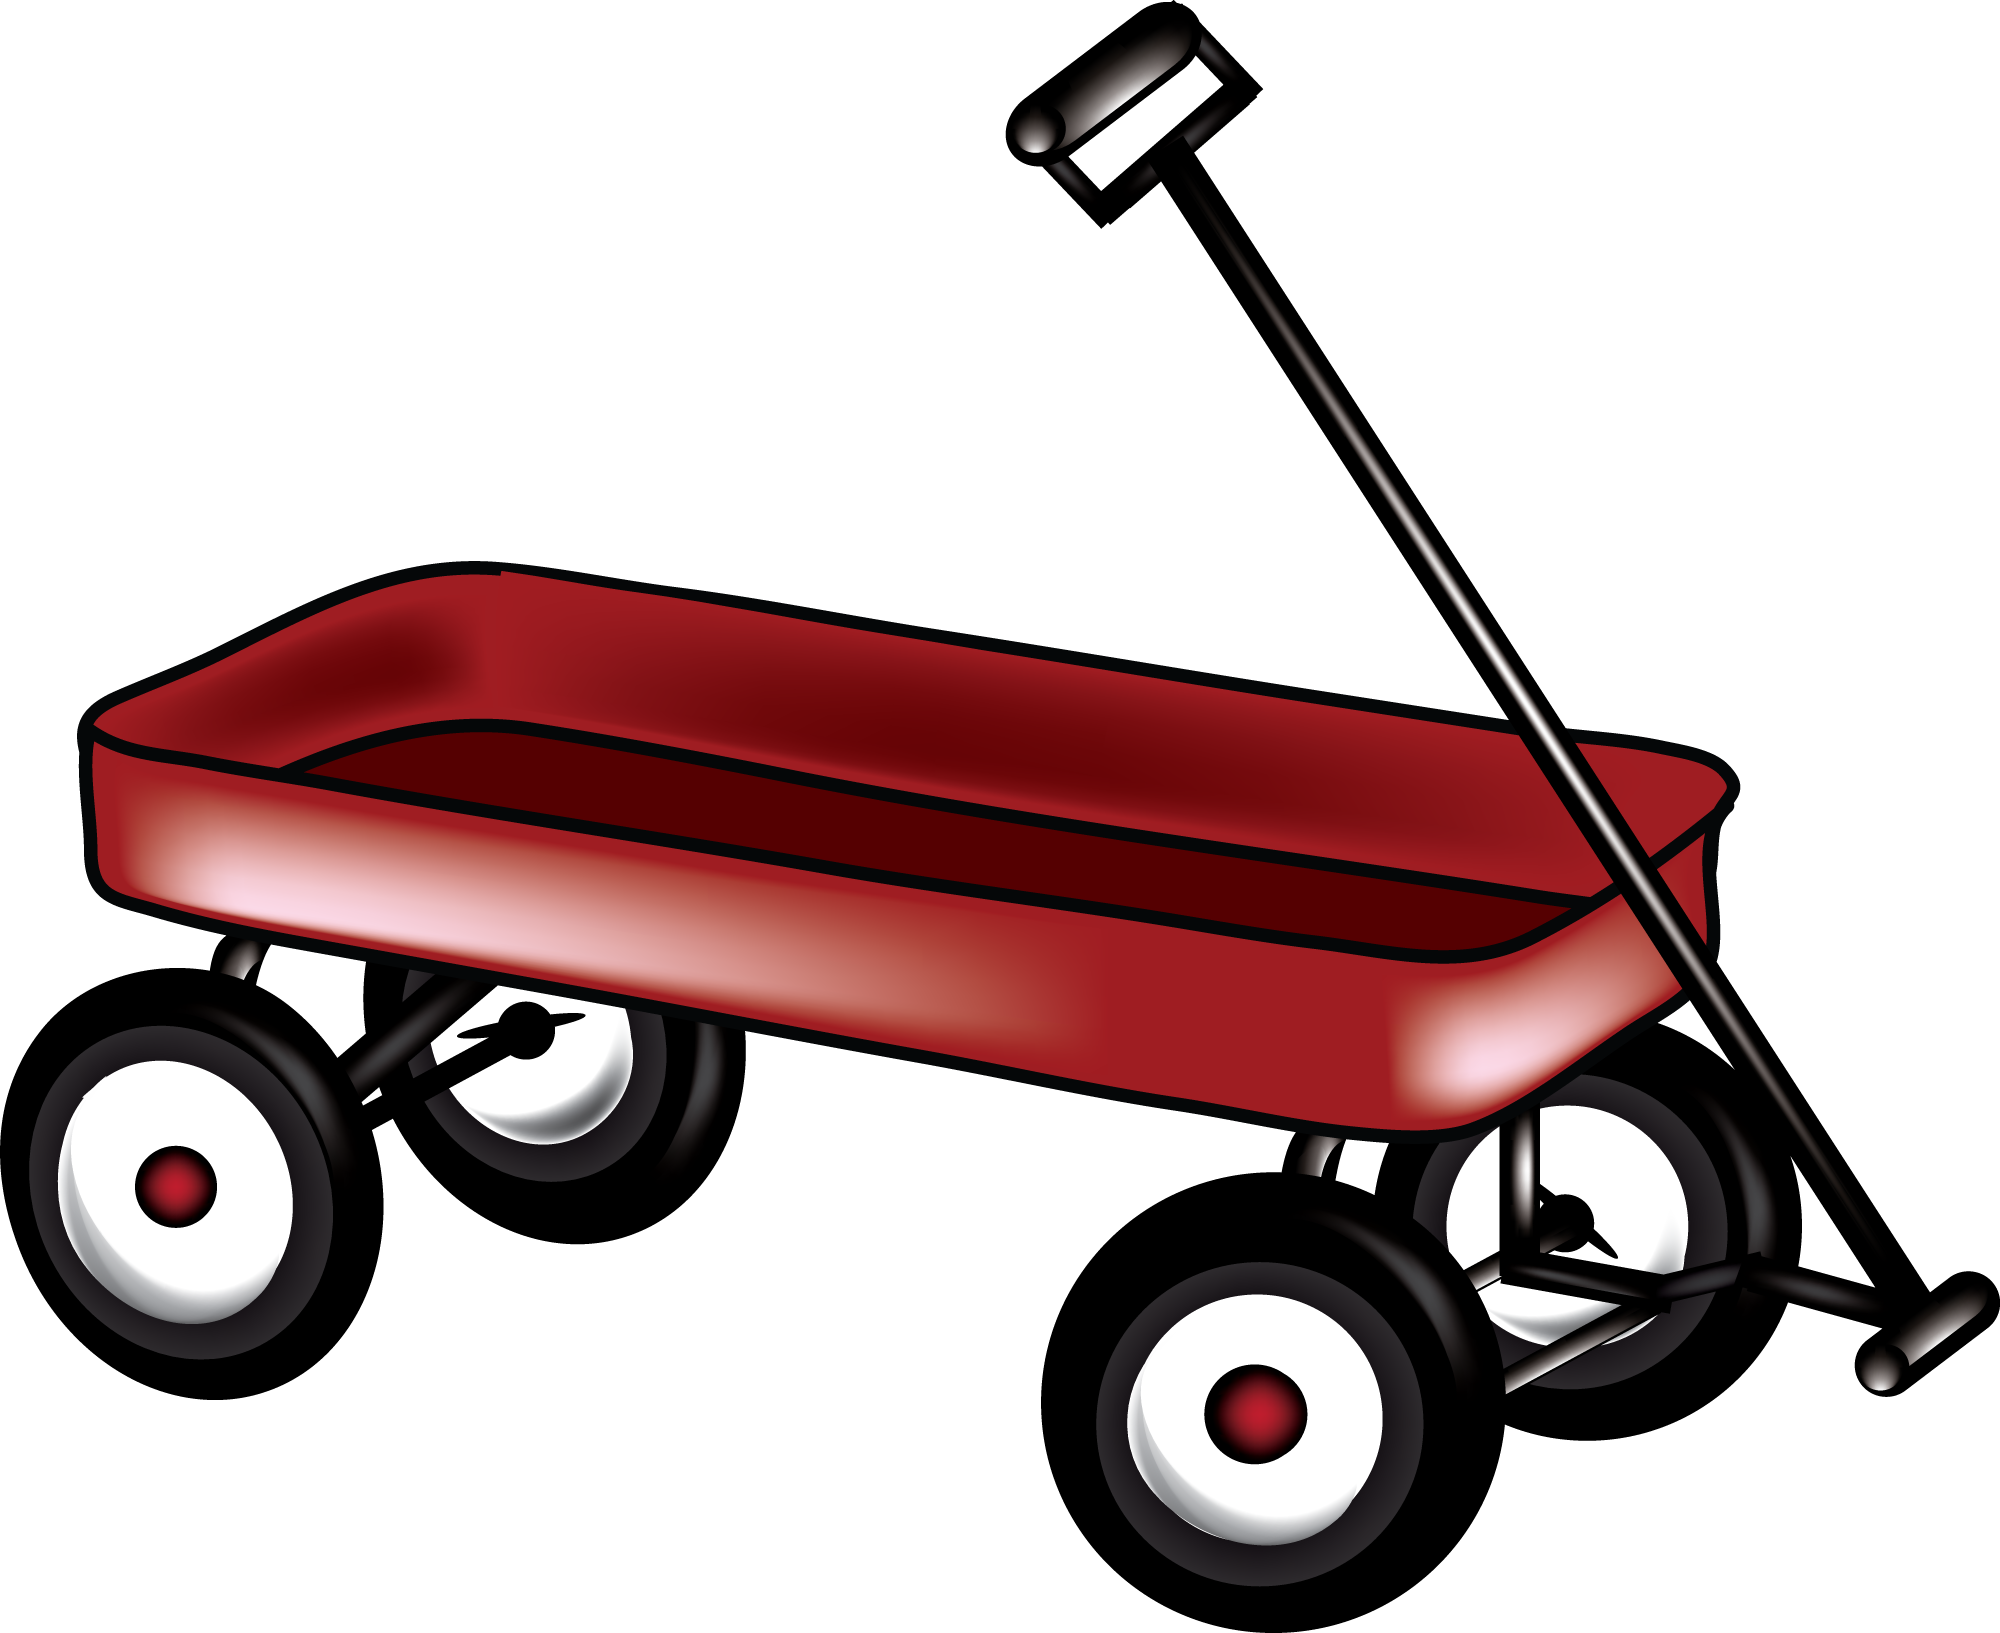 Http pluspng com png. Hospital clipart trolley